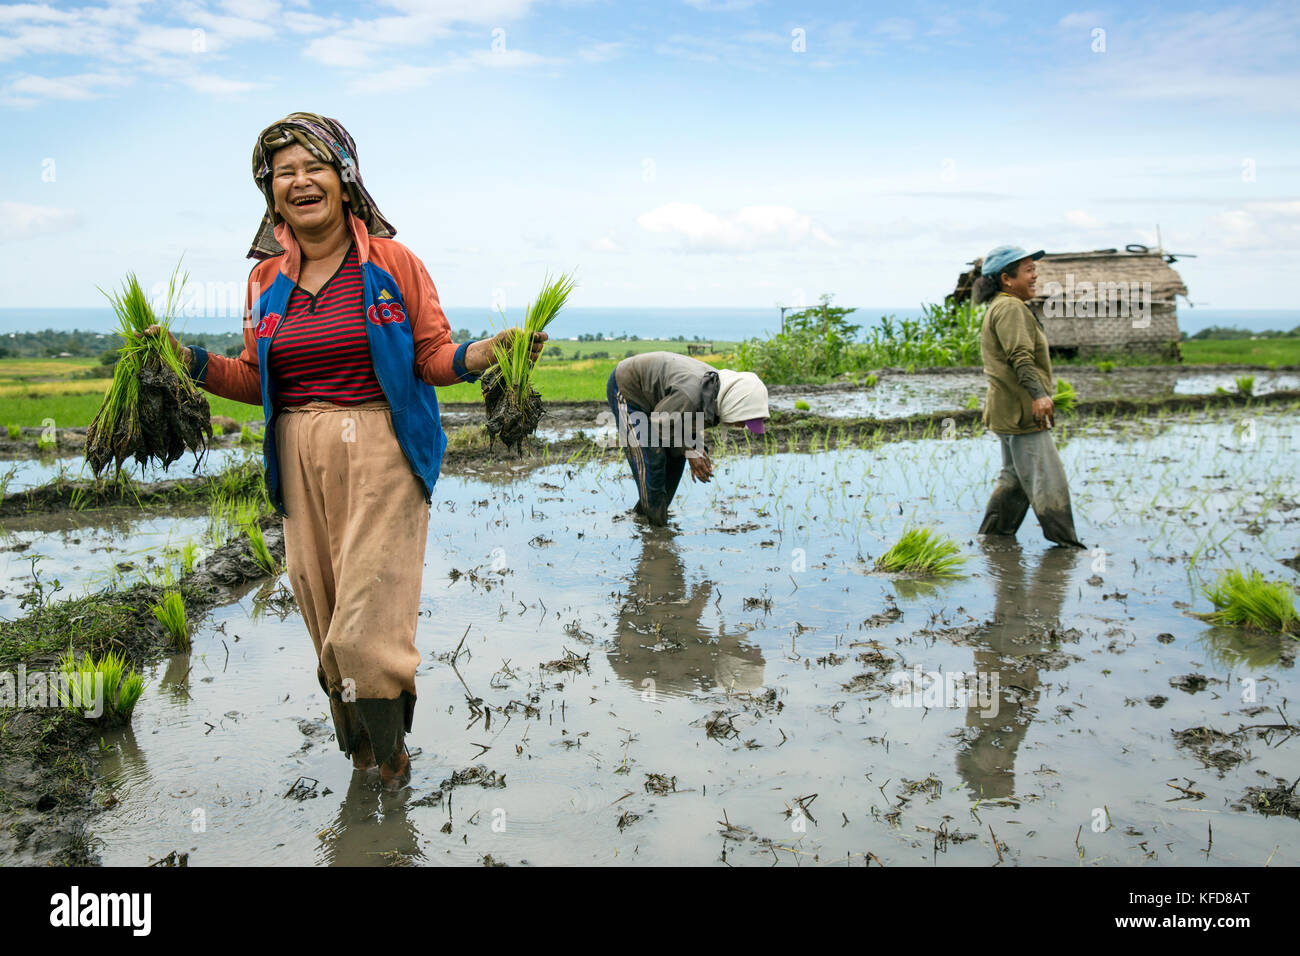 INDONESIA, Flores, women plant rice shoots in a field in Narang village - Stock Image